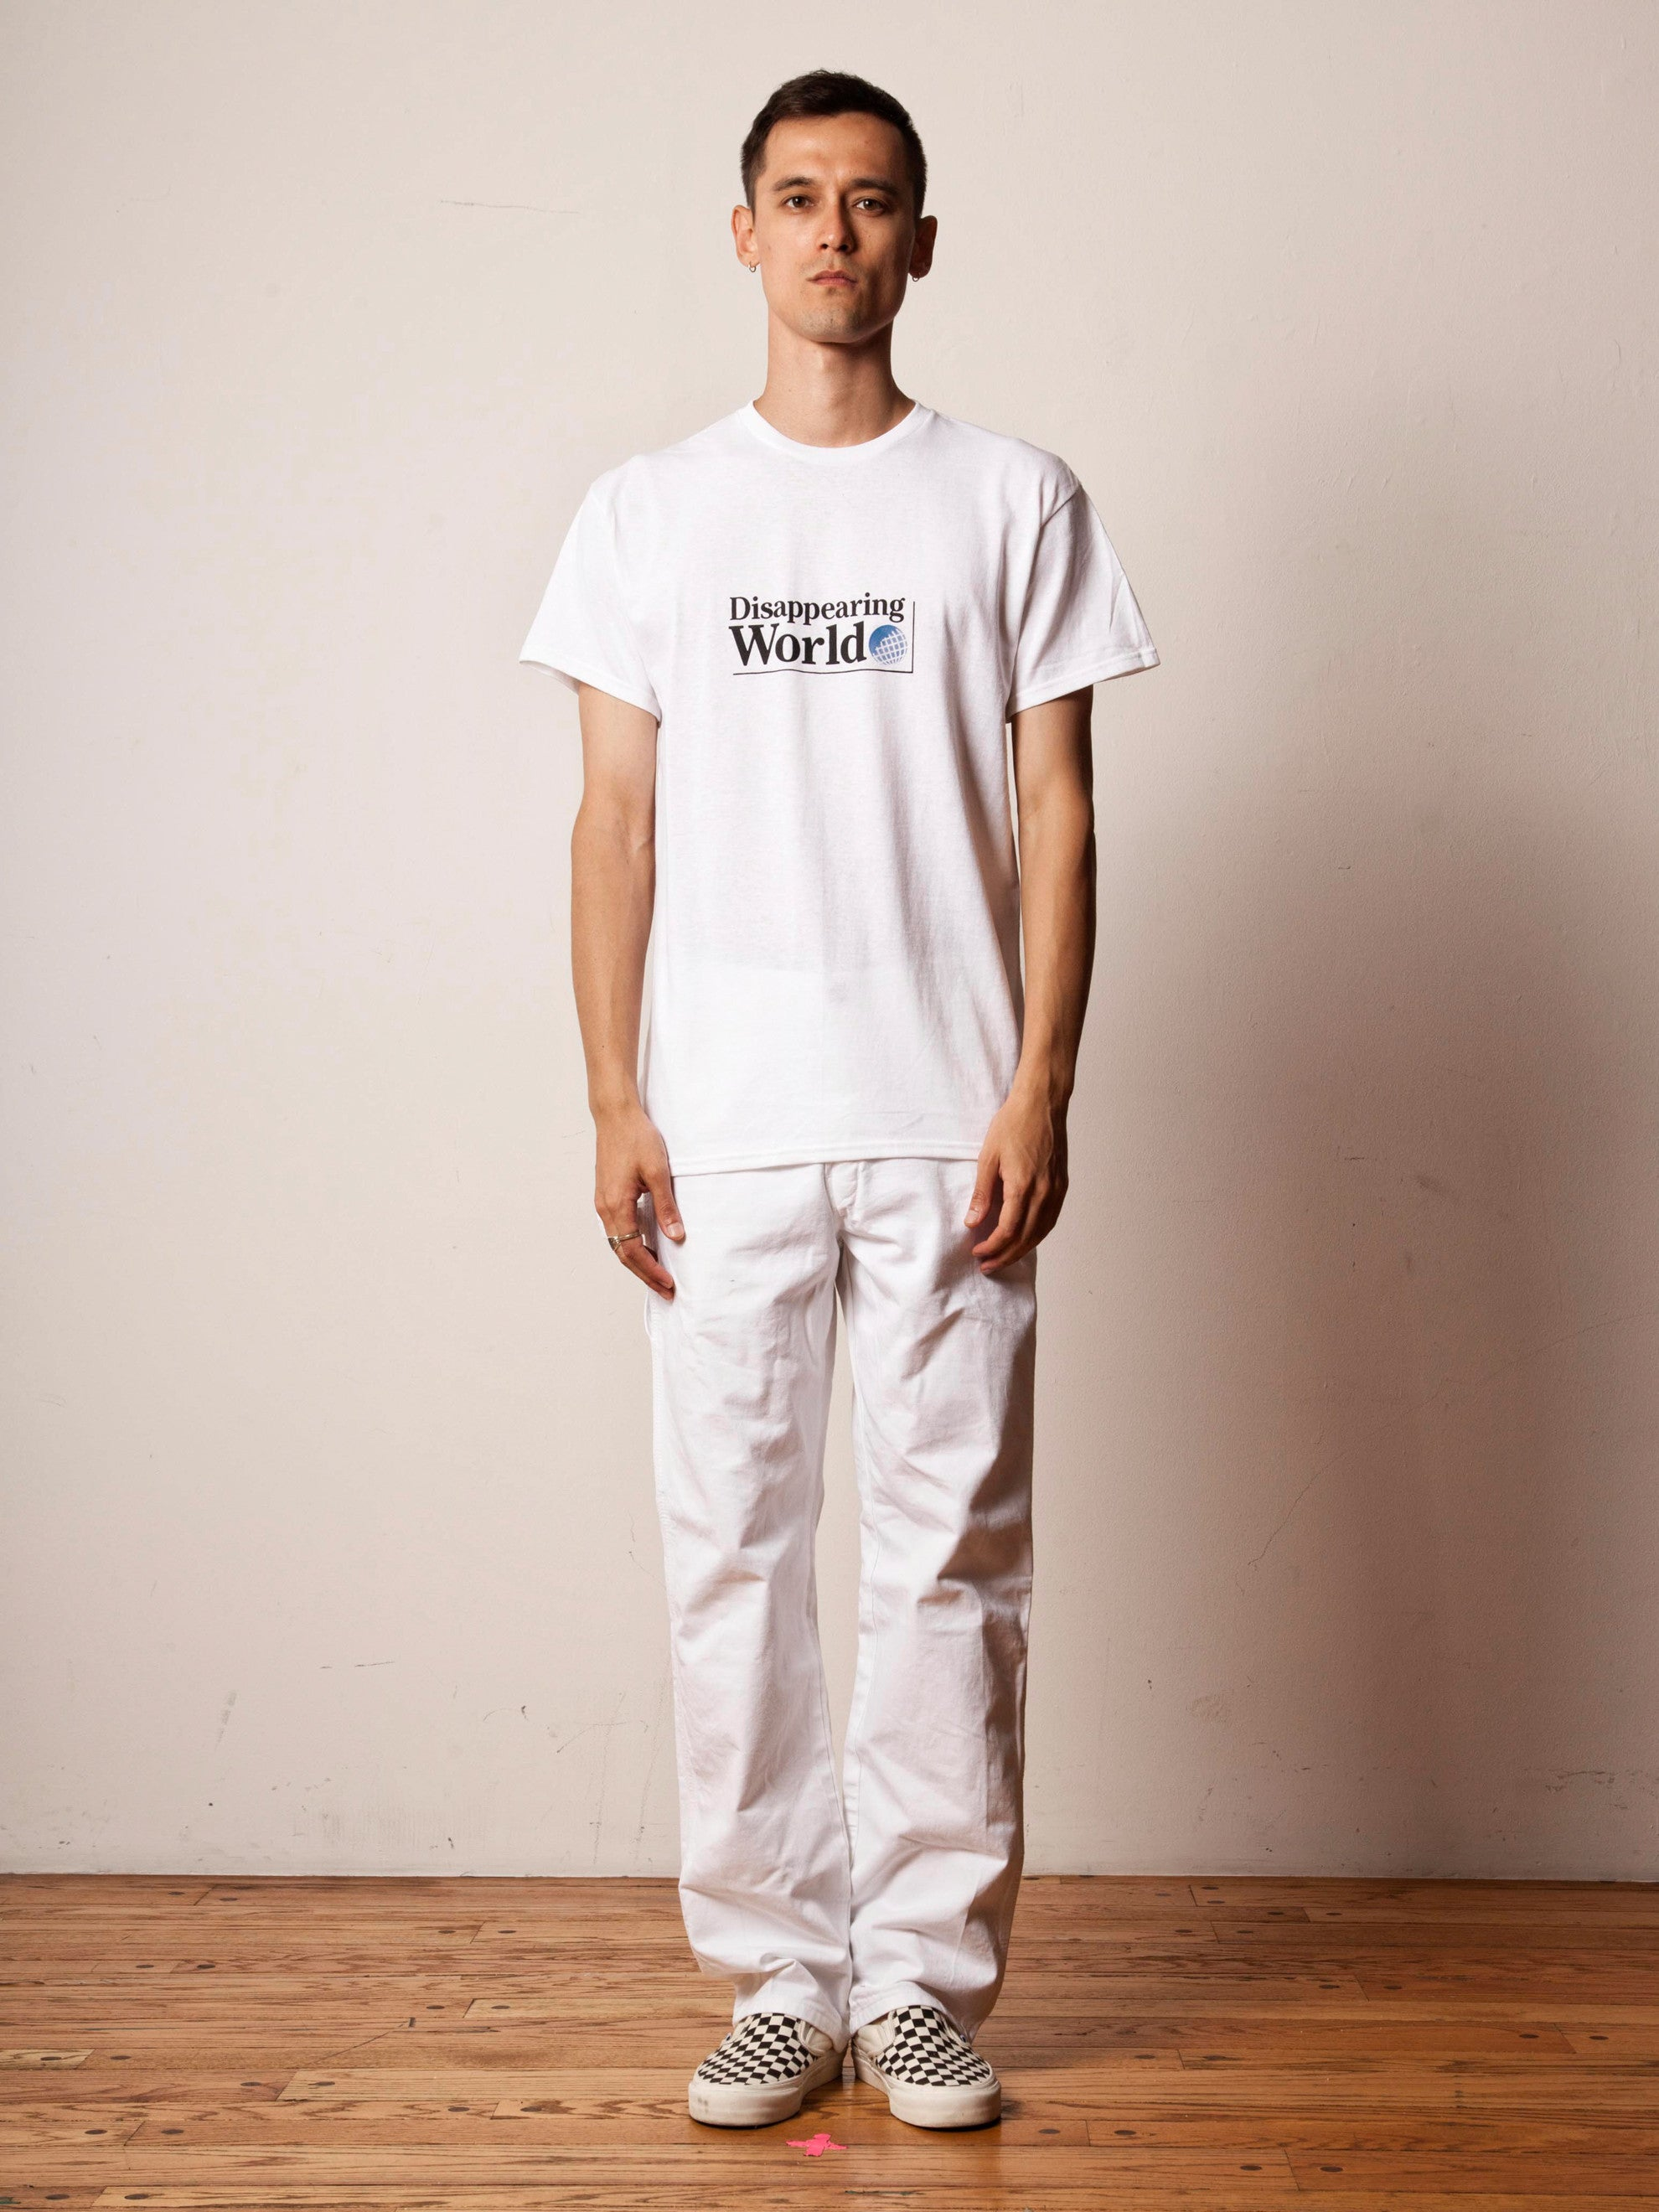 White Disappearing World T-Shirt 2